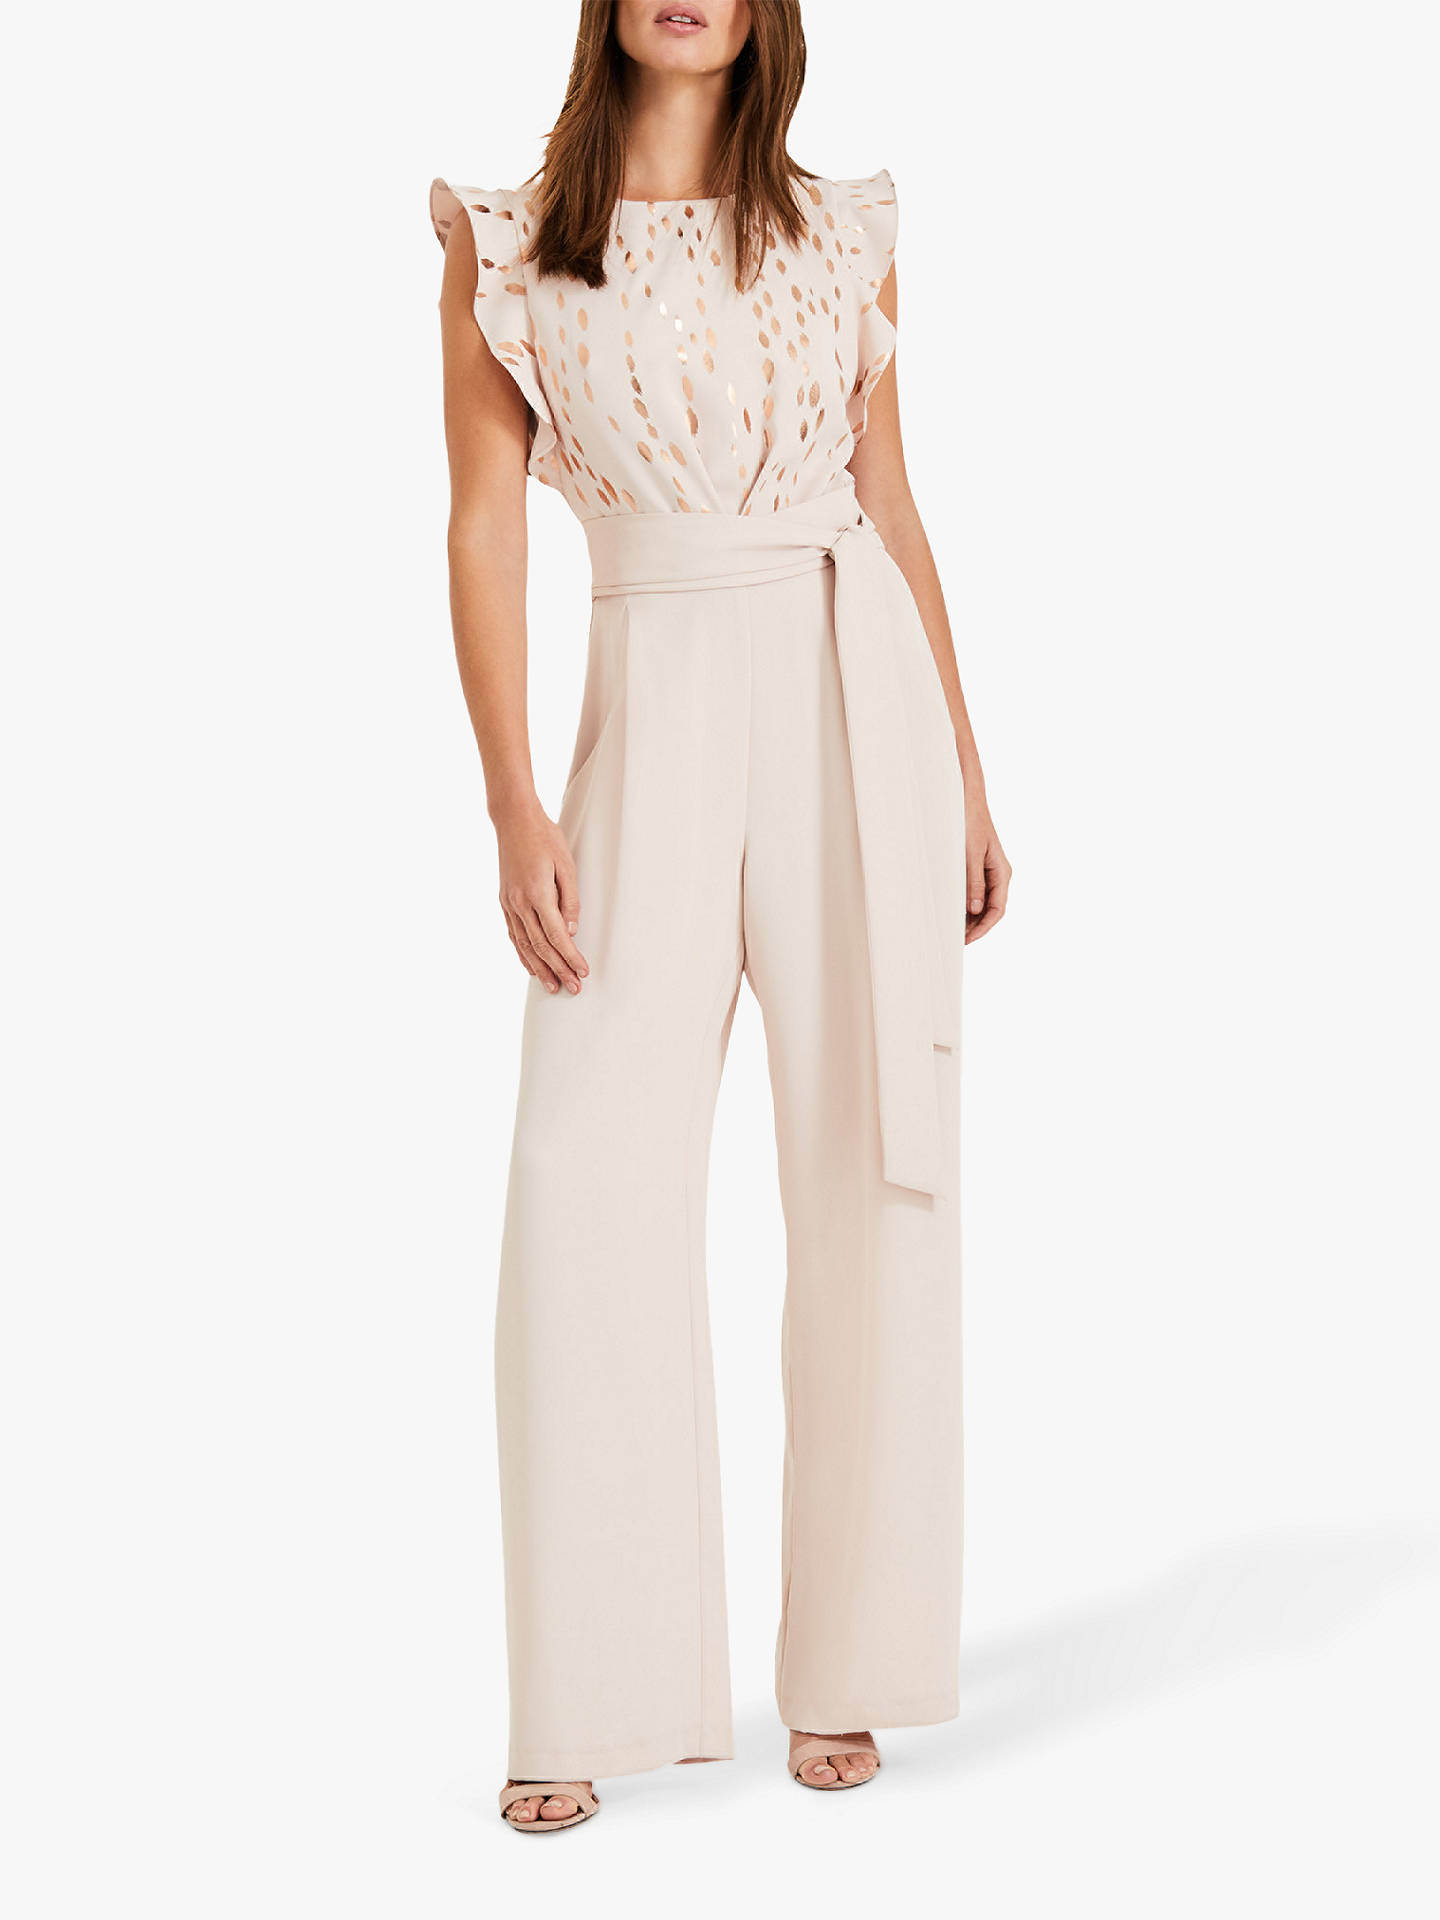 c9d77bfeed9 Buy Phase Eight Victoriana Foil Print Jumpsuit